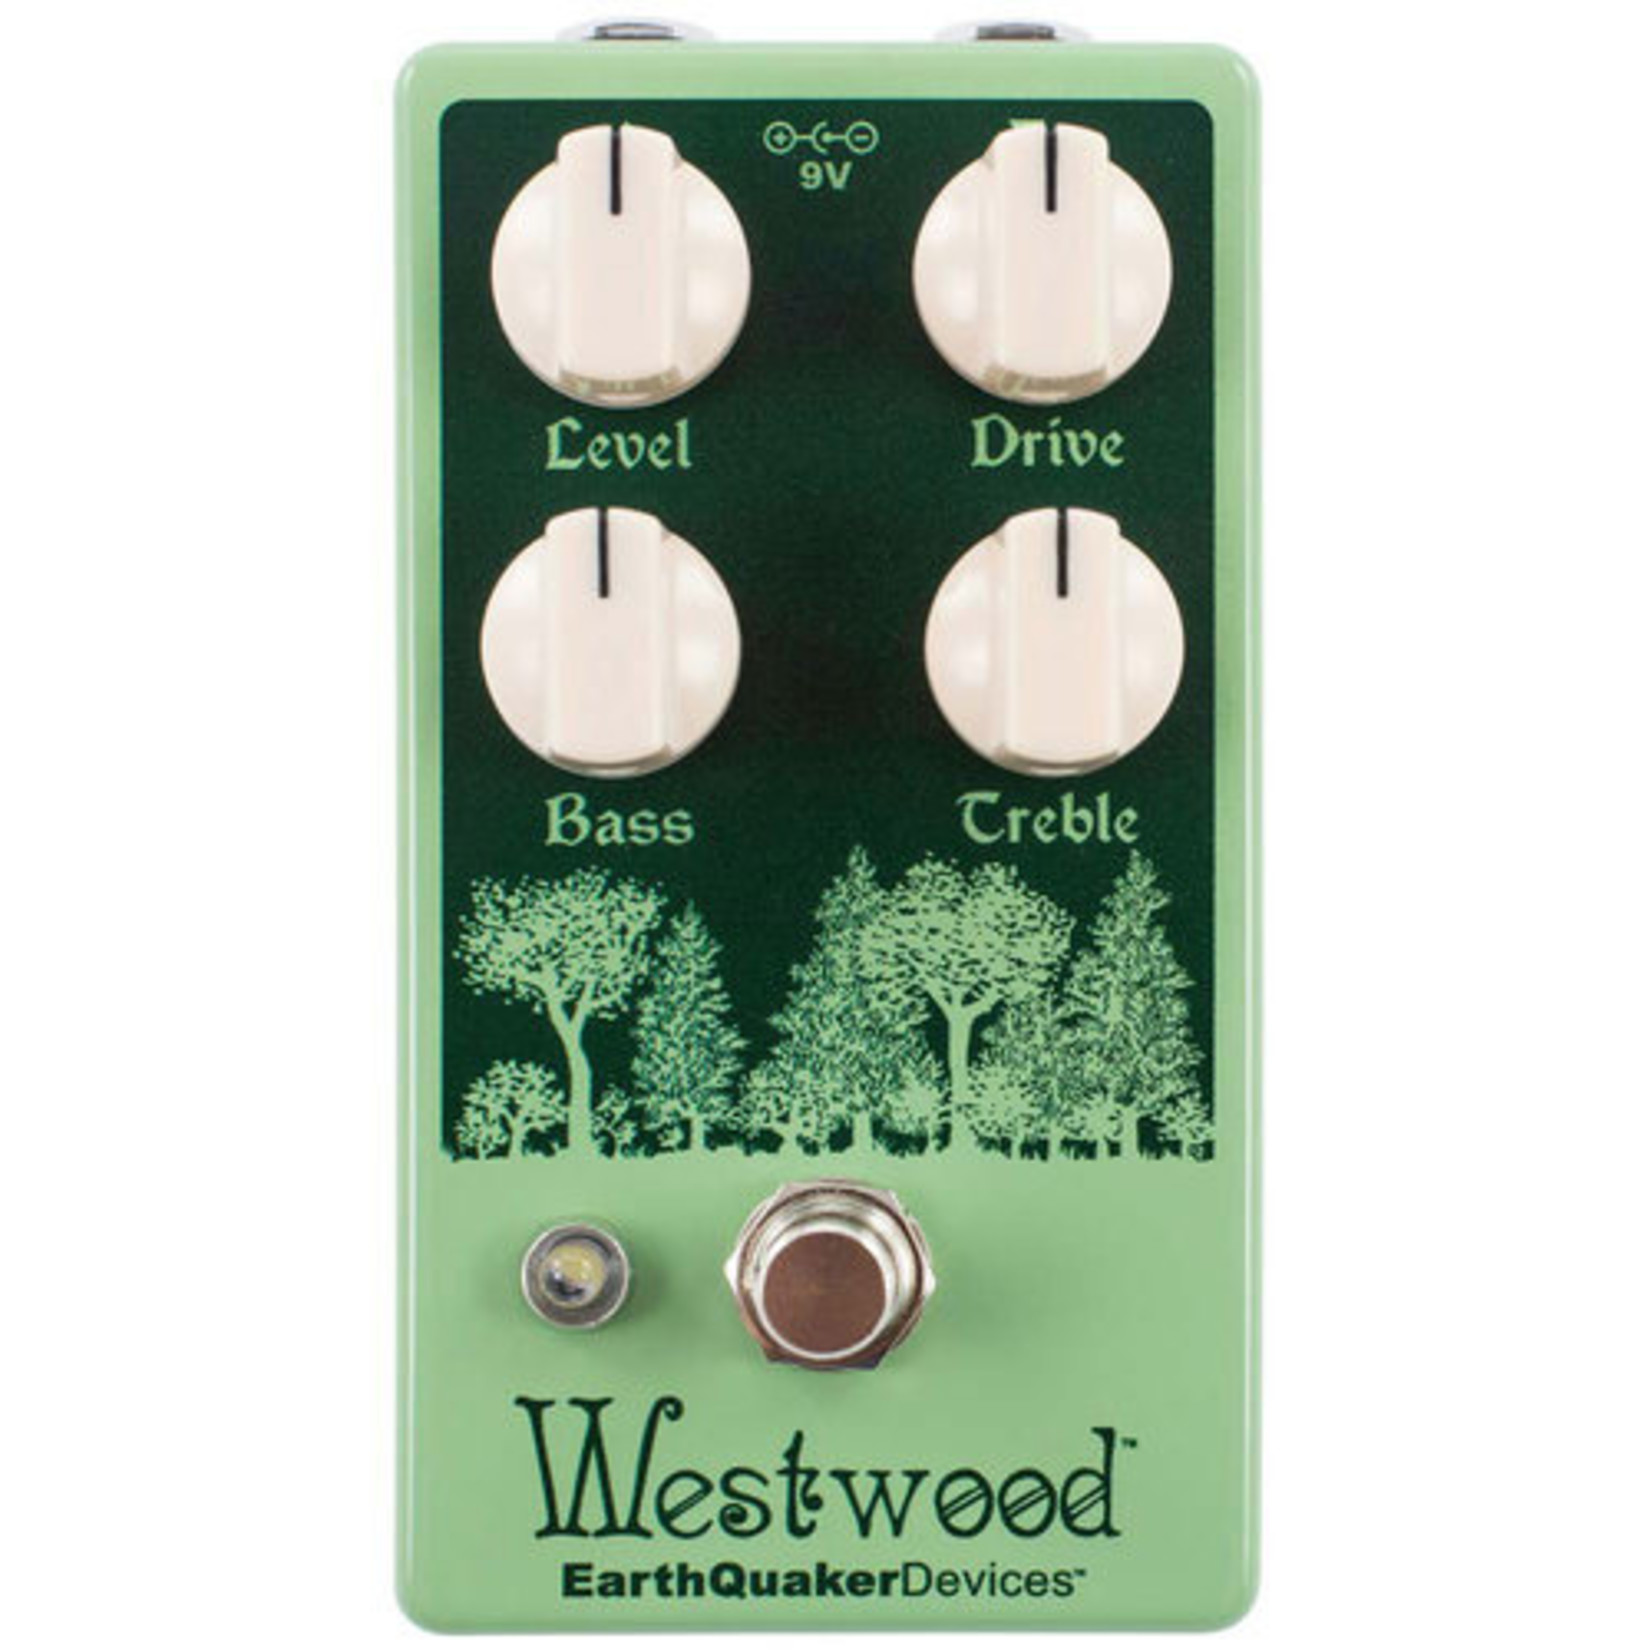 Earthquaker Devices EarthQuaker Devices Westwood